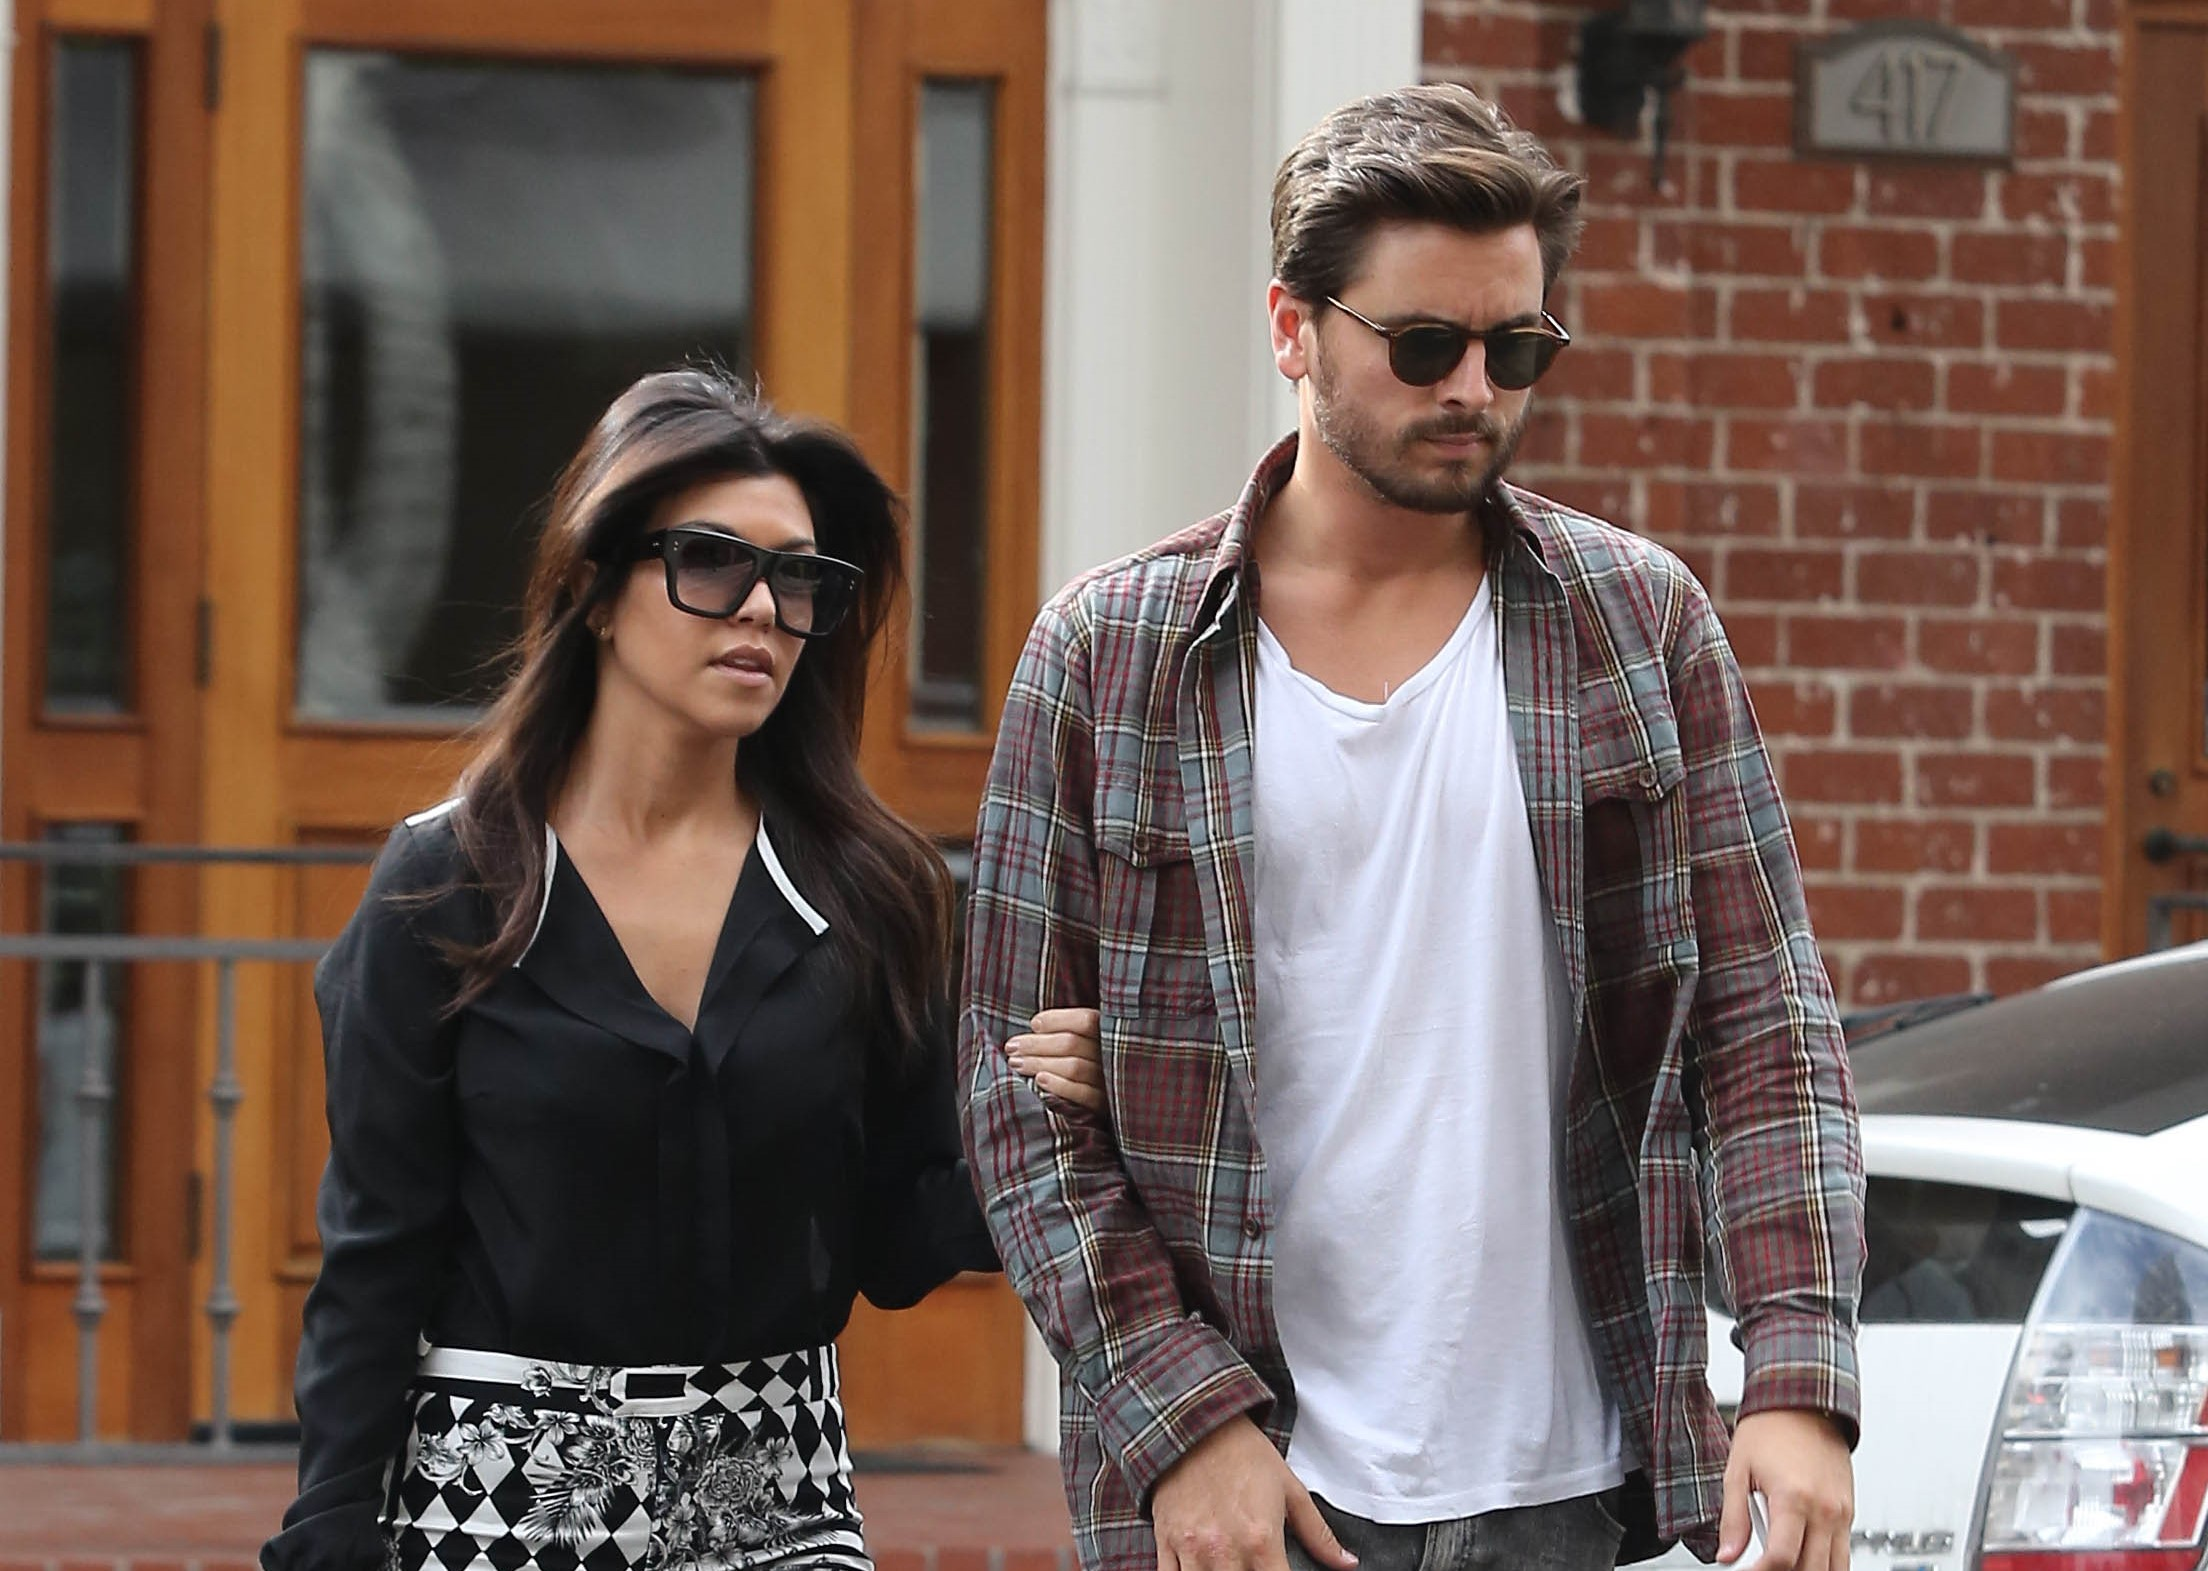 Kourtney Kardashian 'living with Scott and wants ANOTHER baby'